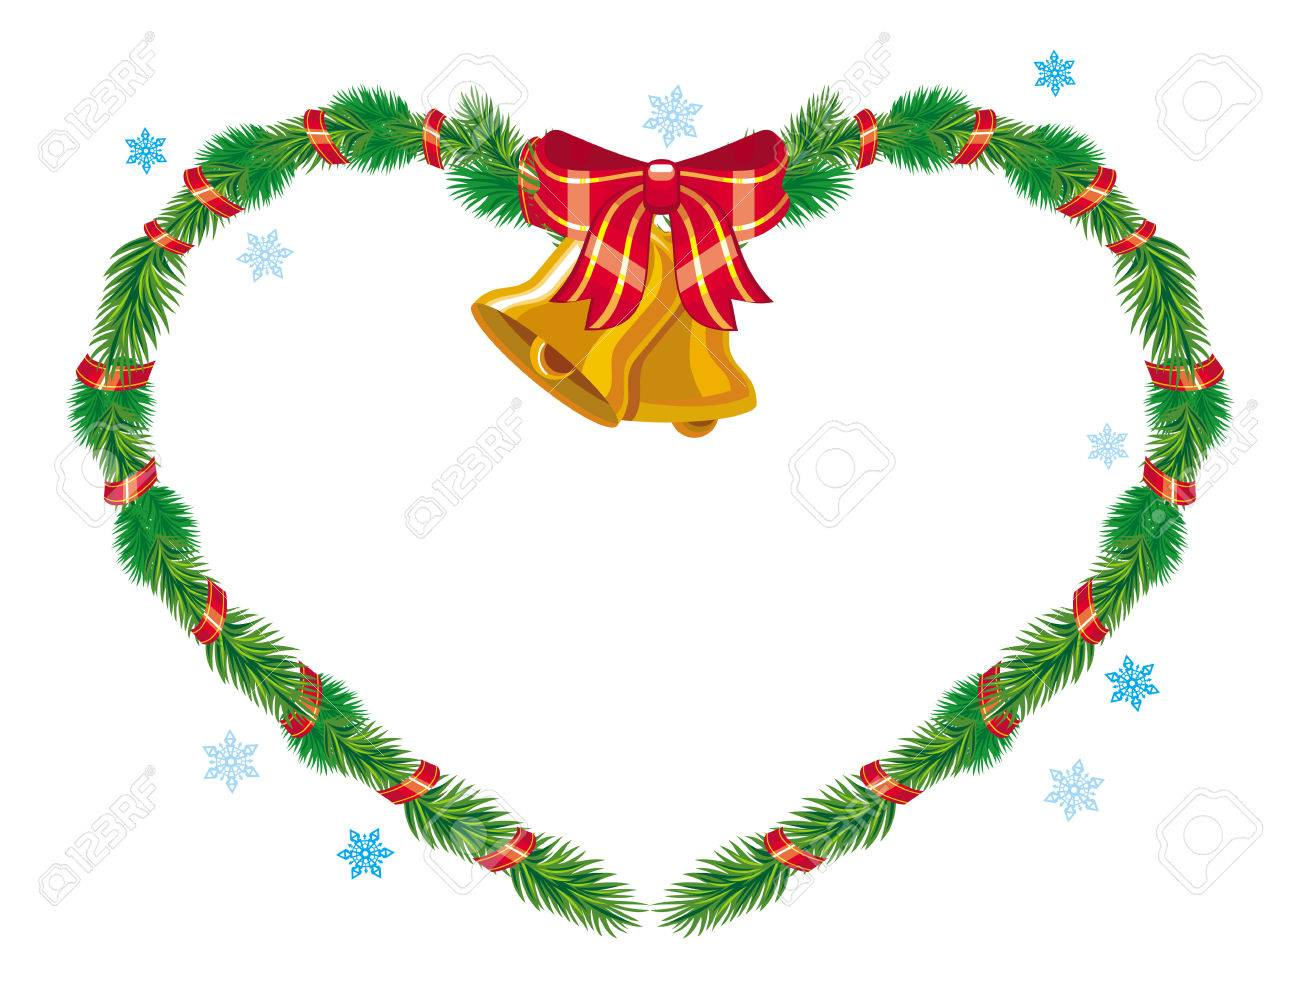 Christmas Heart Vector.Holiday Christmas Heart Shaped Garland With Bells